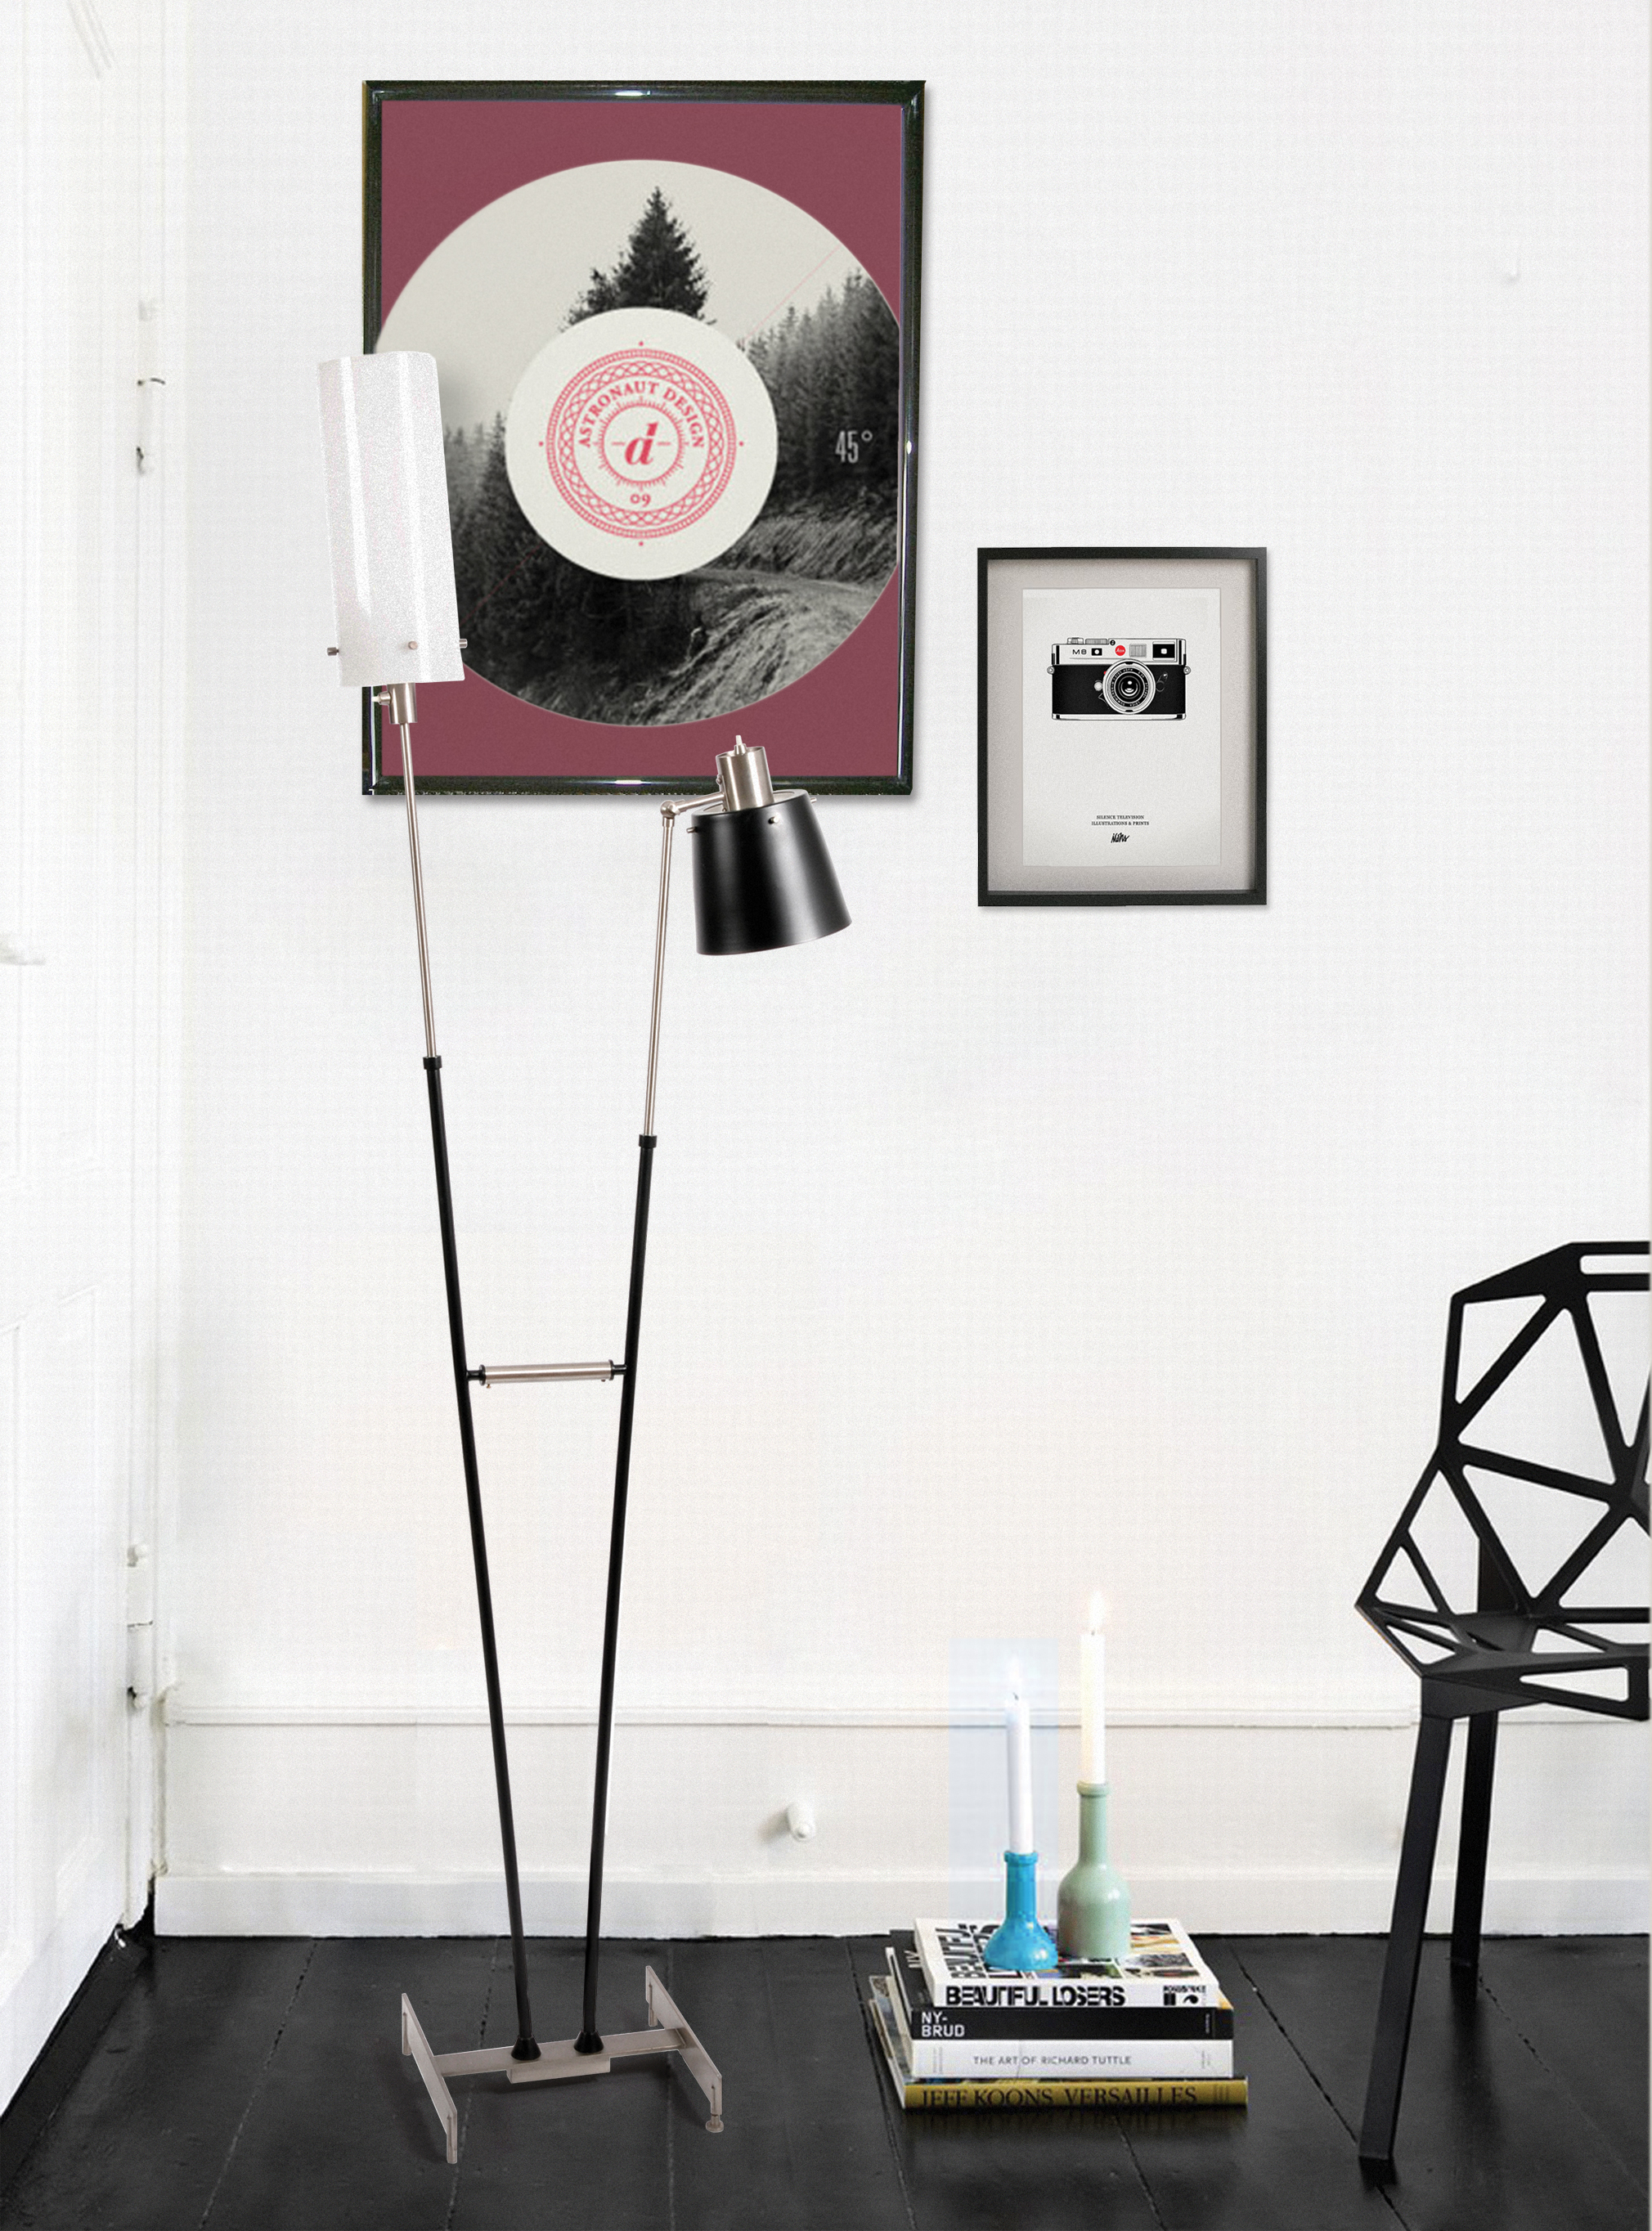 Bright Ideas A Black and White Floor Lamp for Your Reading Corner 1 black and white floor lamp Bright Ideas: A Black and White Floor Lamp for Your Reading Corner Bright Ideas A Black and White Floor Lamp for Your Reading Corner 1